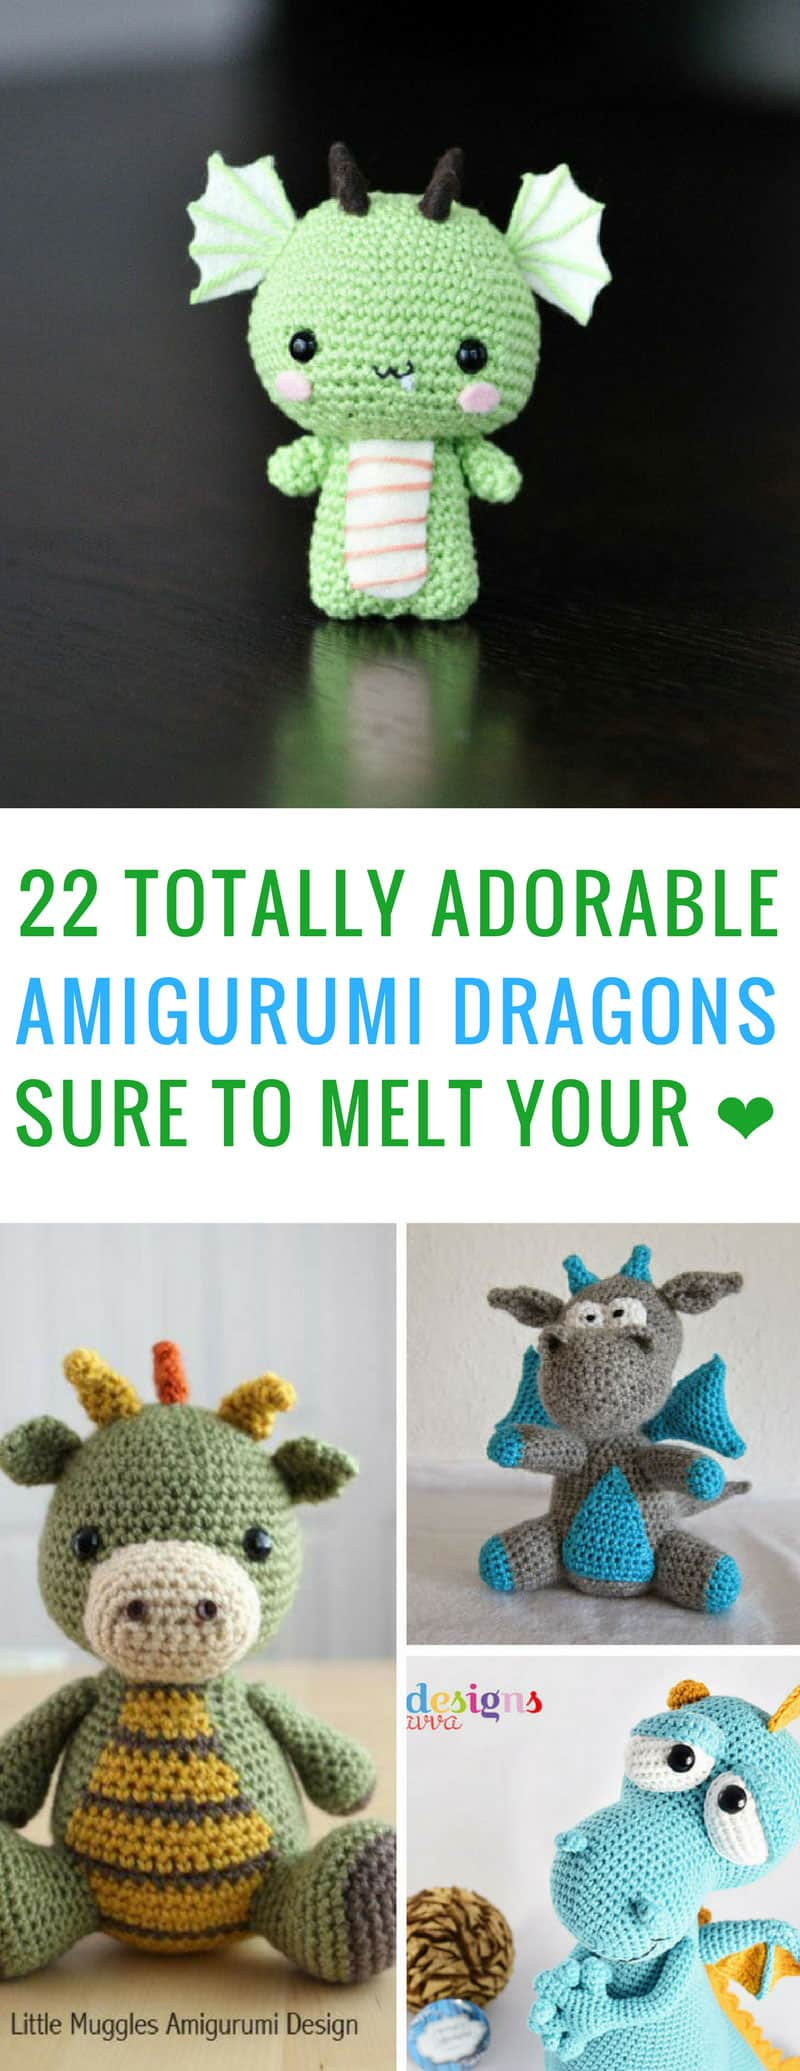 These amigurmi dragons are so cute! I can't wait to make some of them! Thanks for sharing!